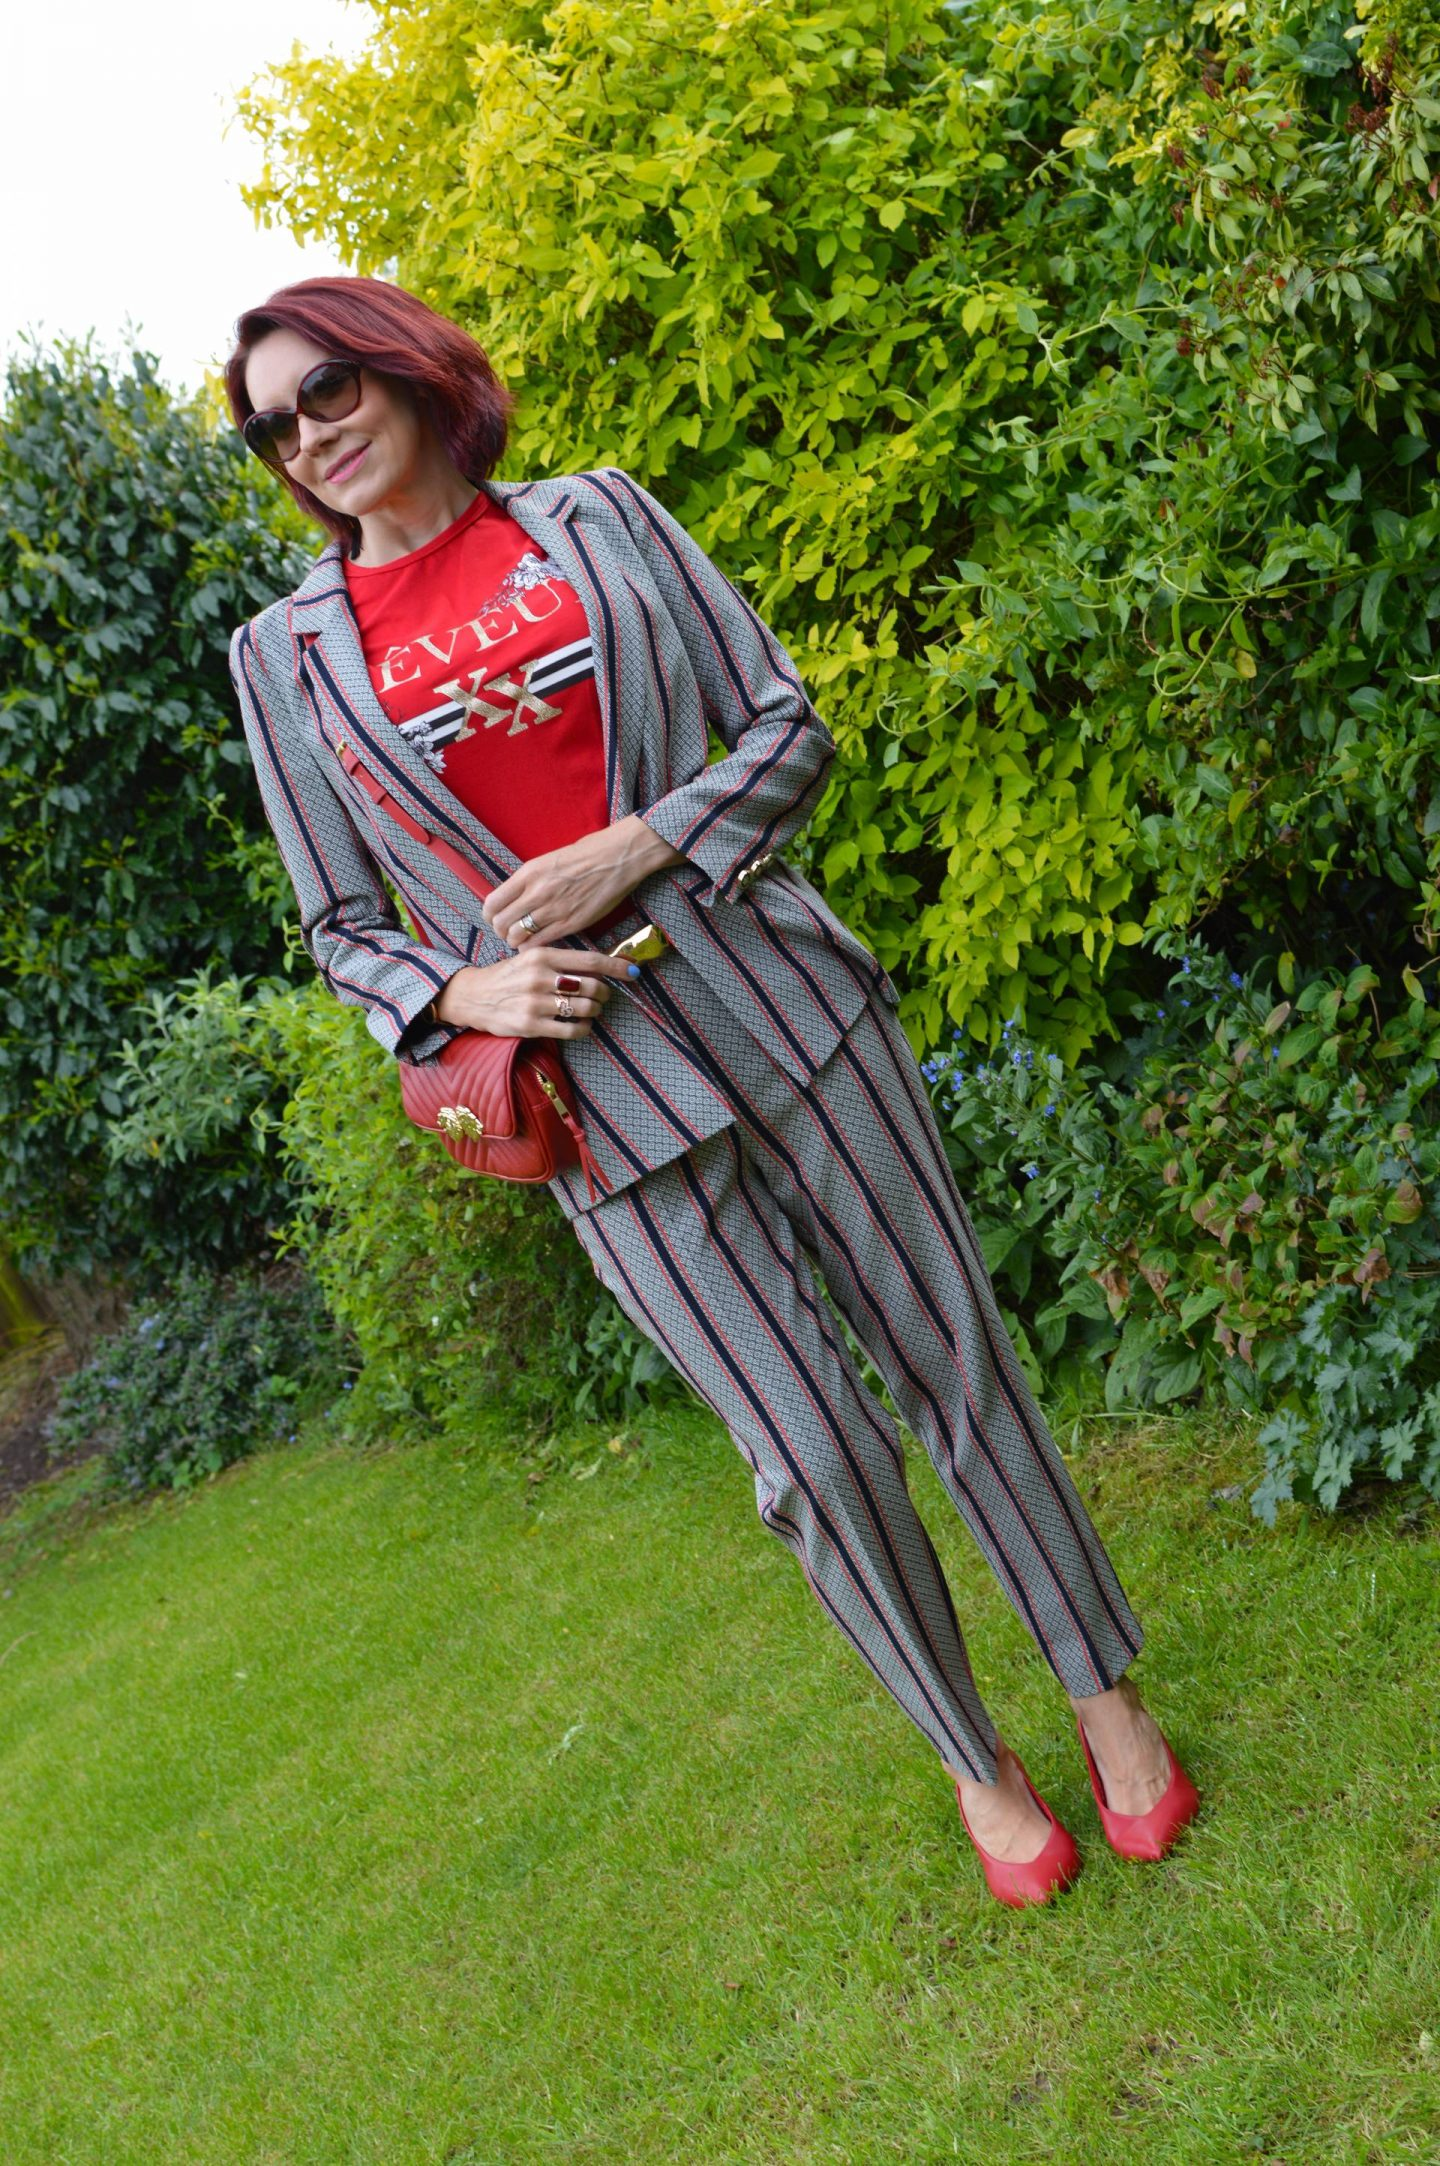 River Island trouser suit and casual T-shirt, Zara crossbody bag